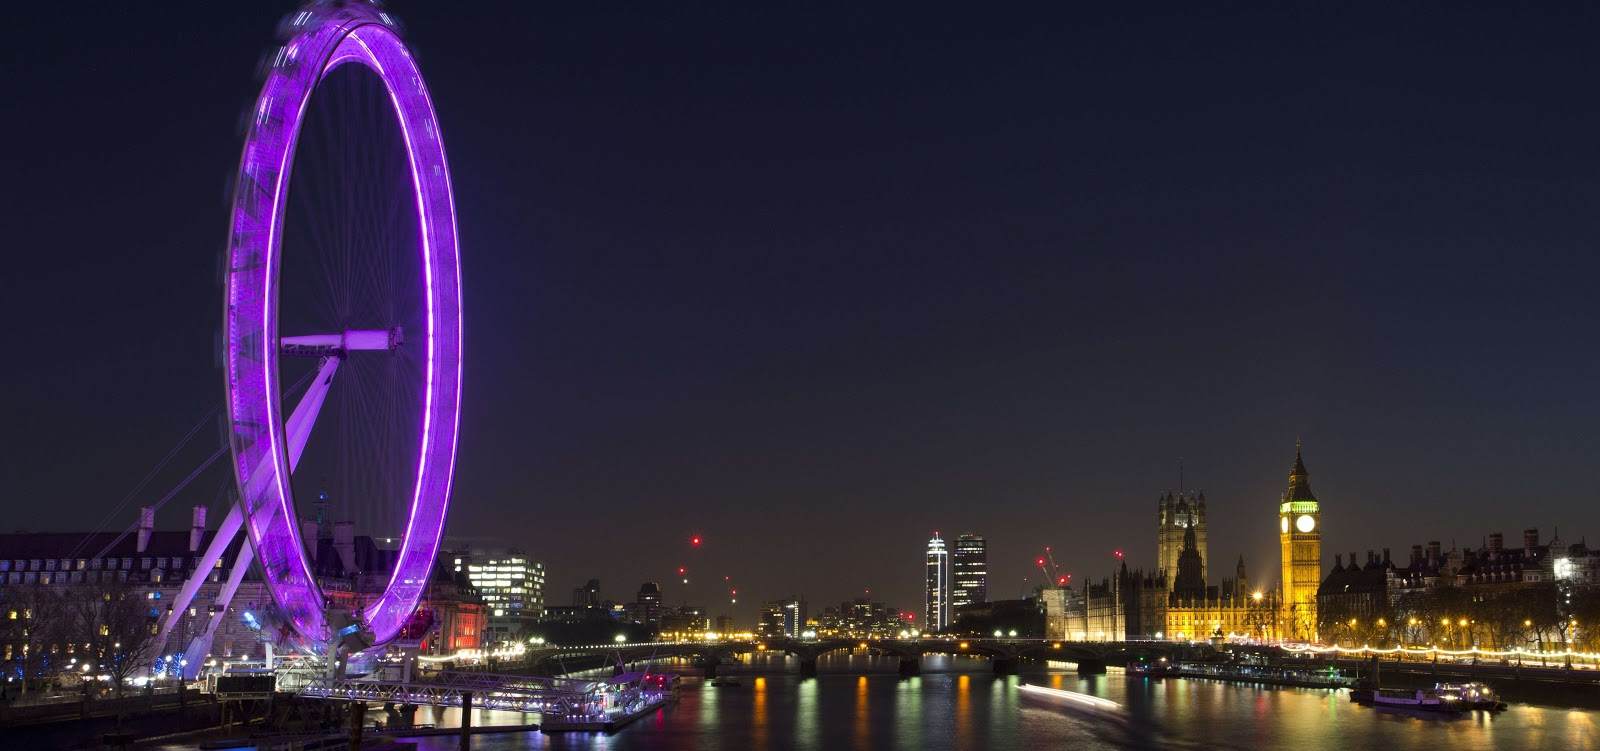 a picture of the london eye next to the thames with the big ben on the opposite side of the river at night